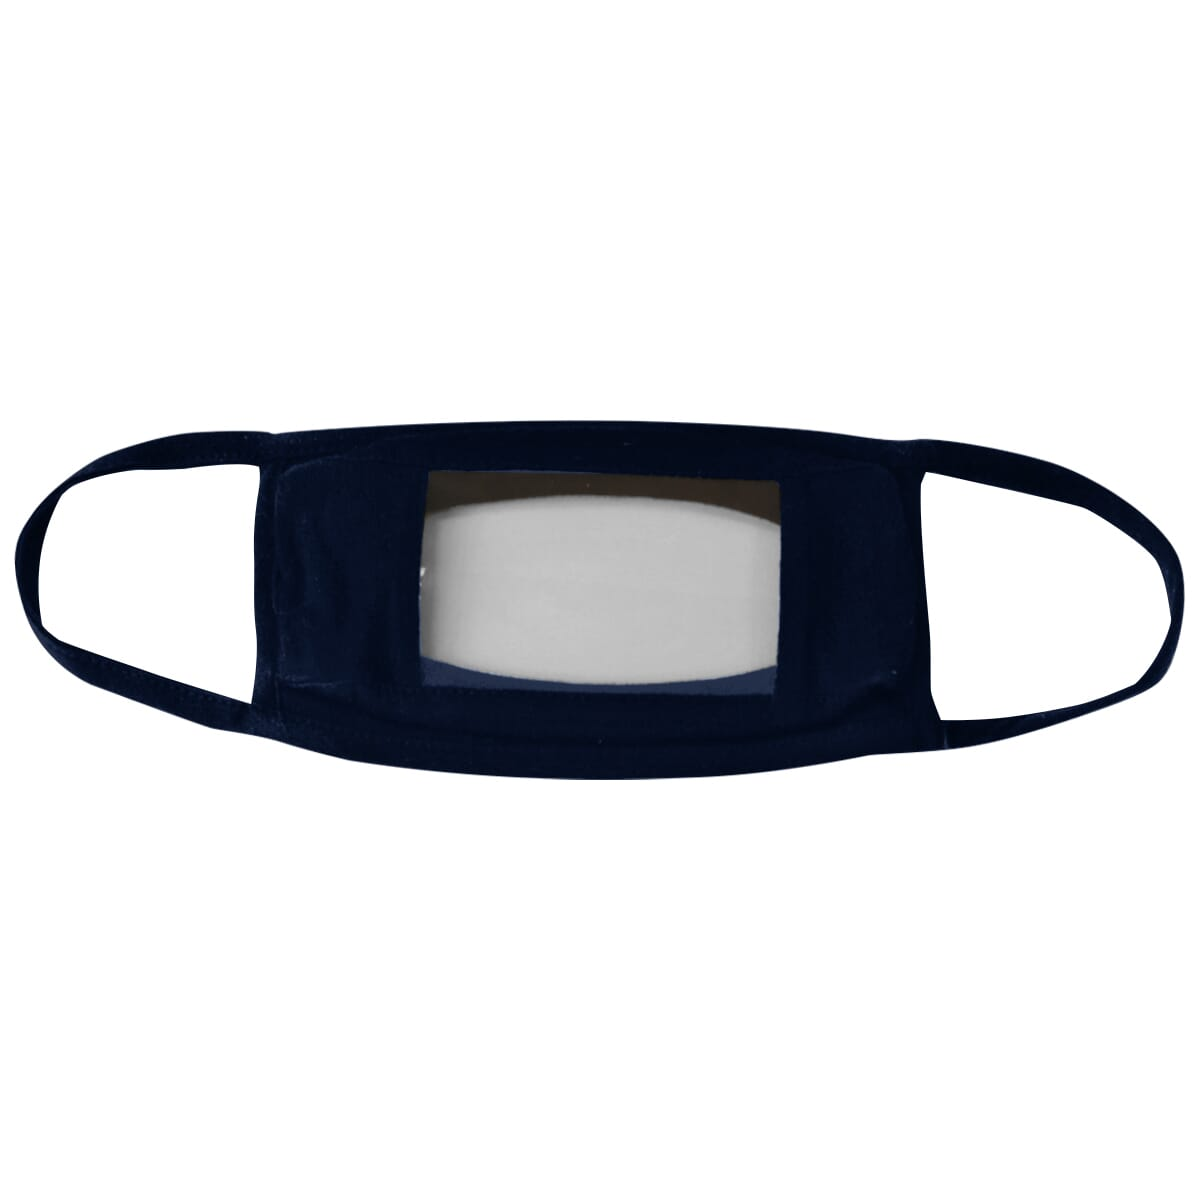 Face mask with window